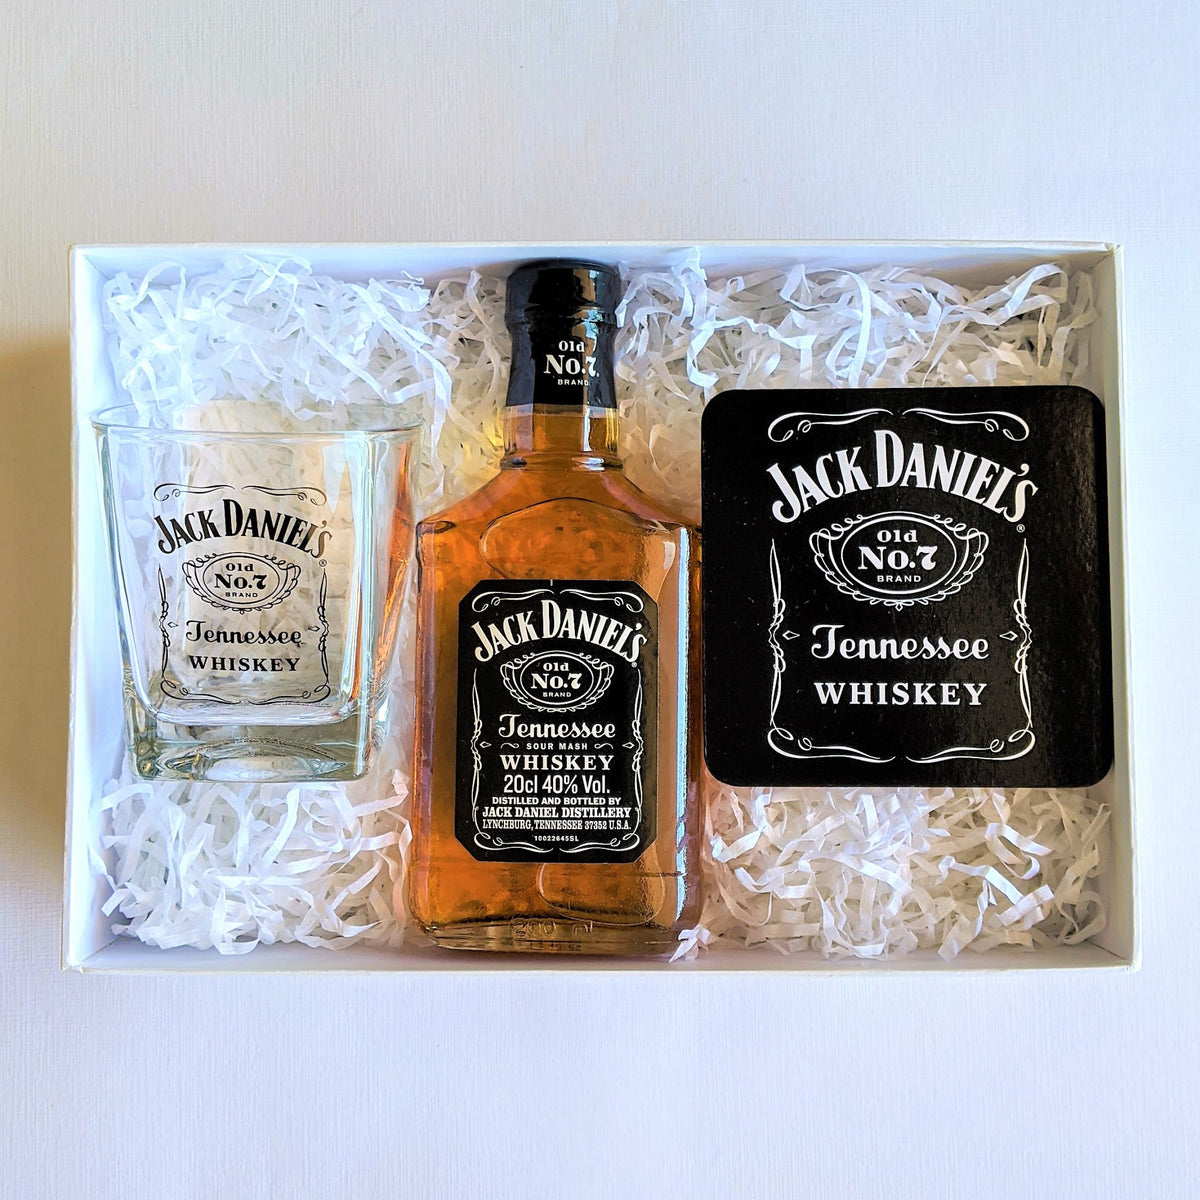 The Swirl Box men's Christmas gift box for father's day with Jack Daniel's whiskey, glass and coaster